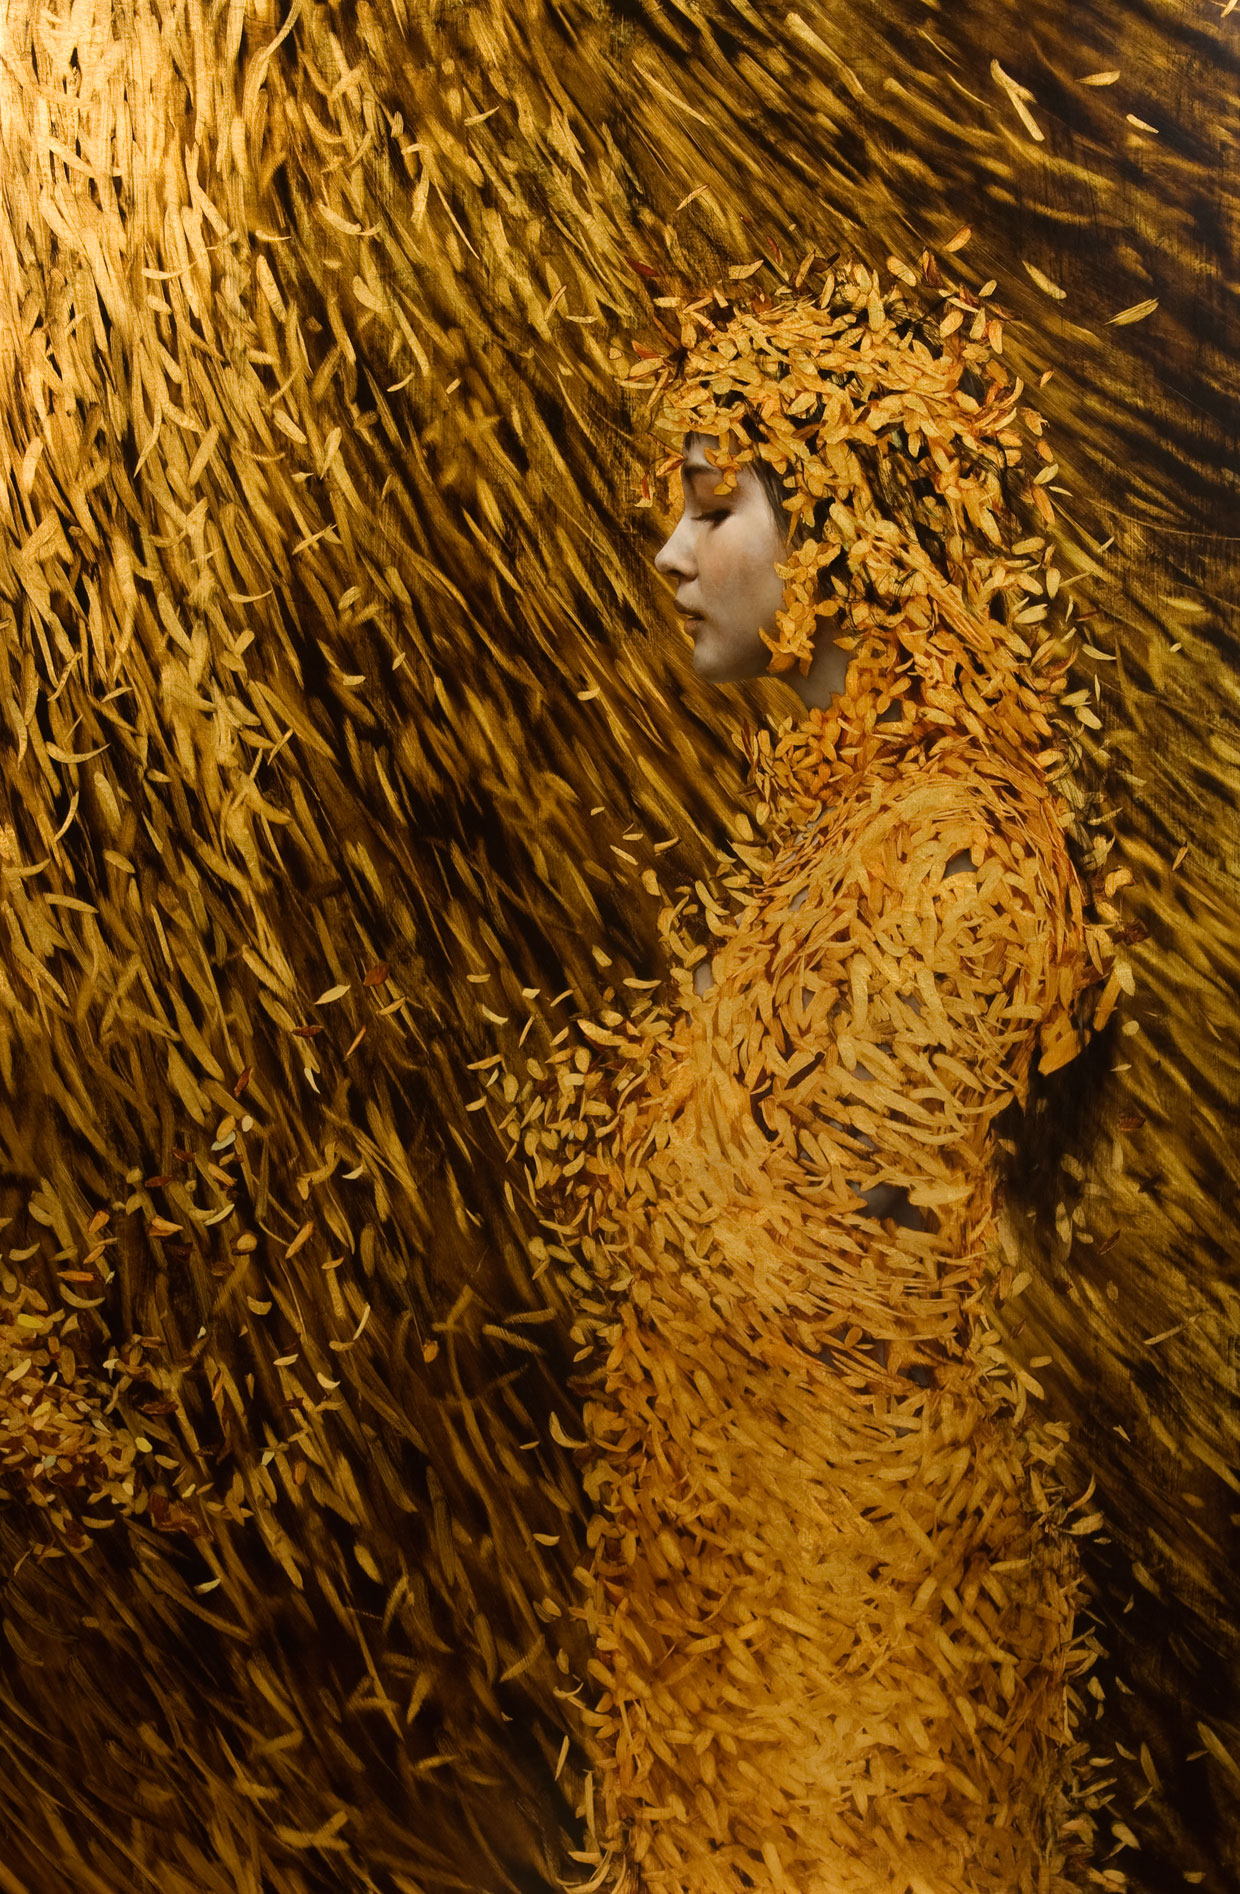 Cocoon , 2012. Oil and goldon linen. 51 x 30inches. Private collection.